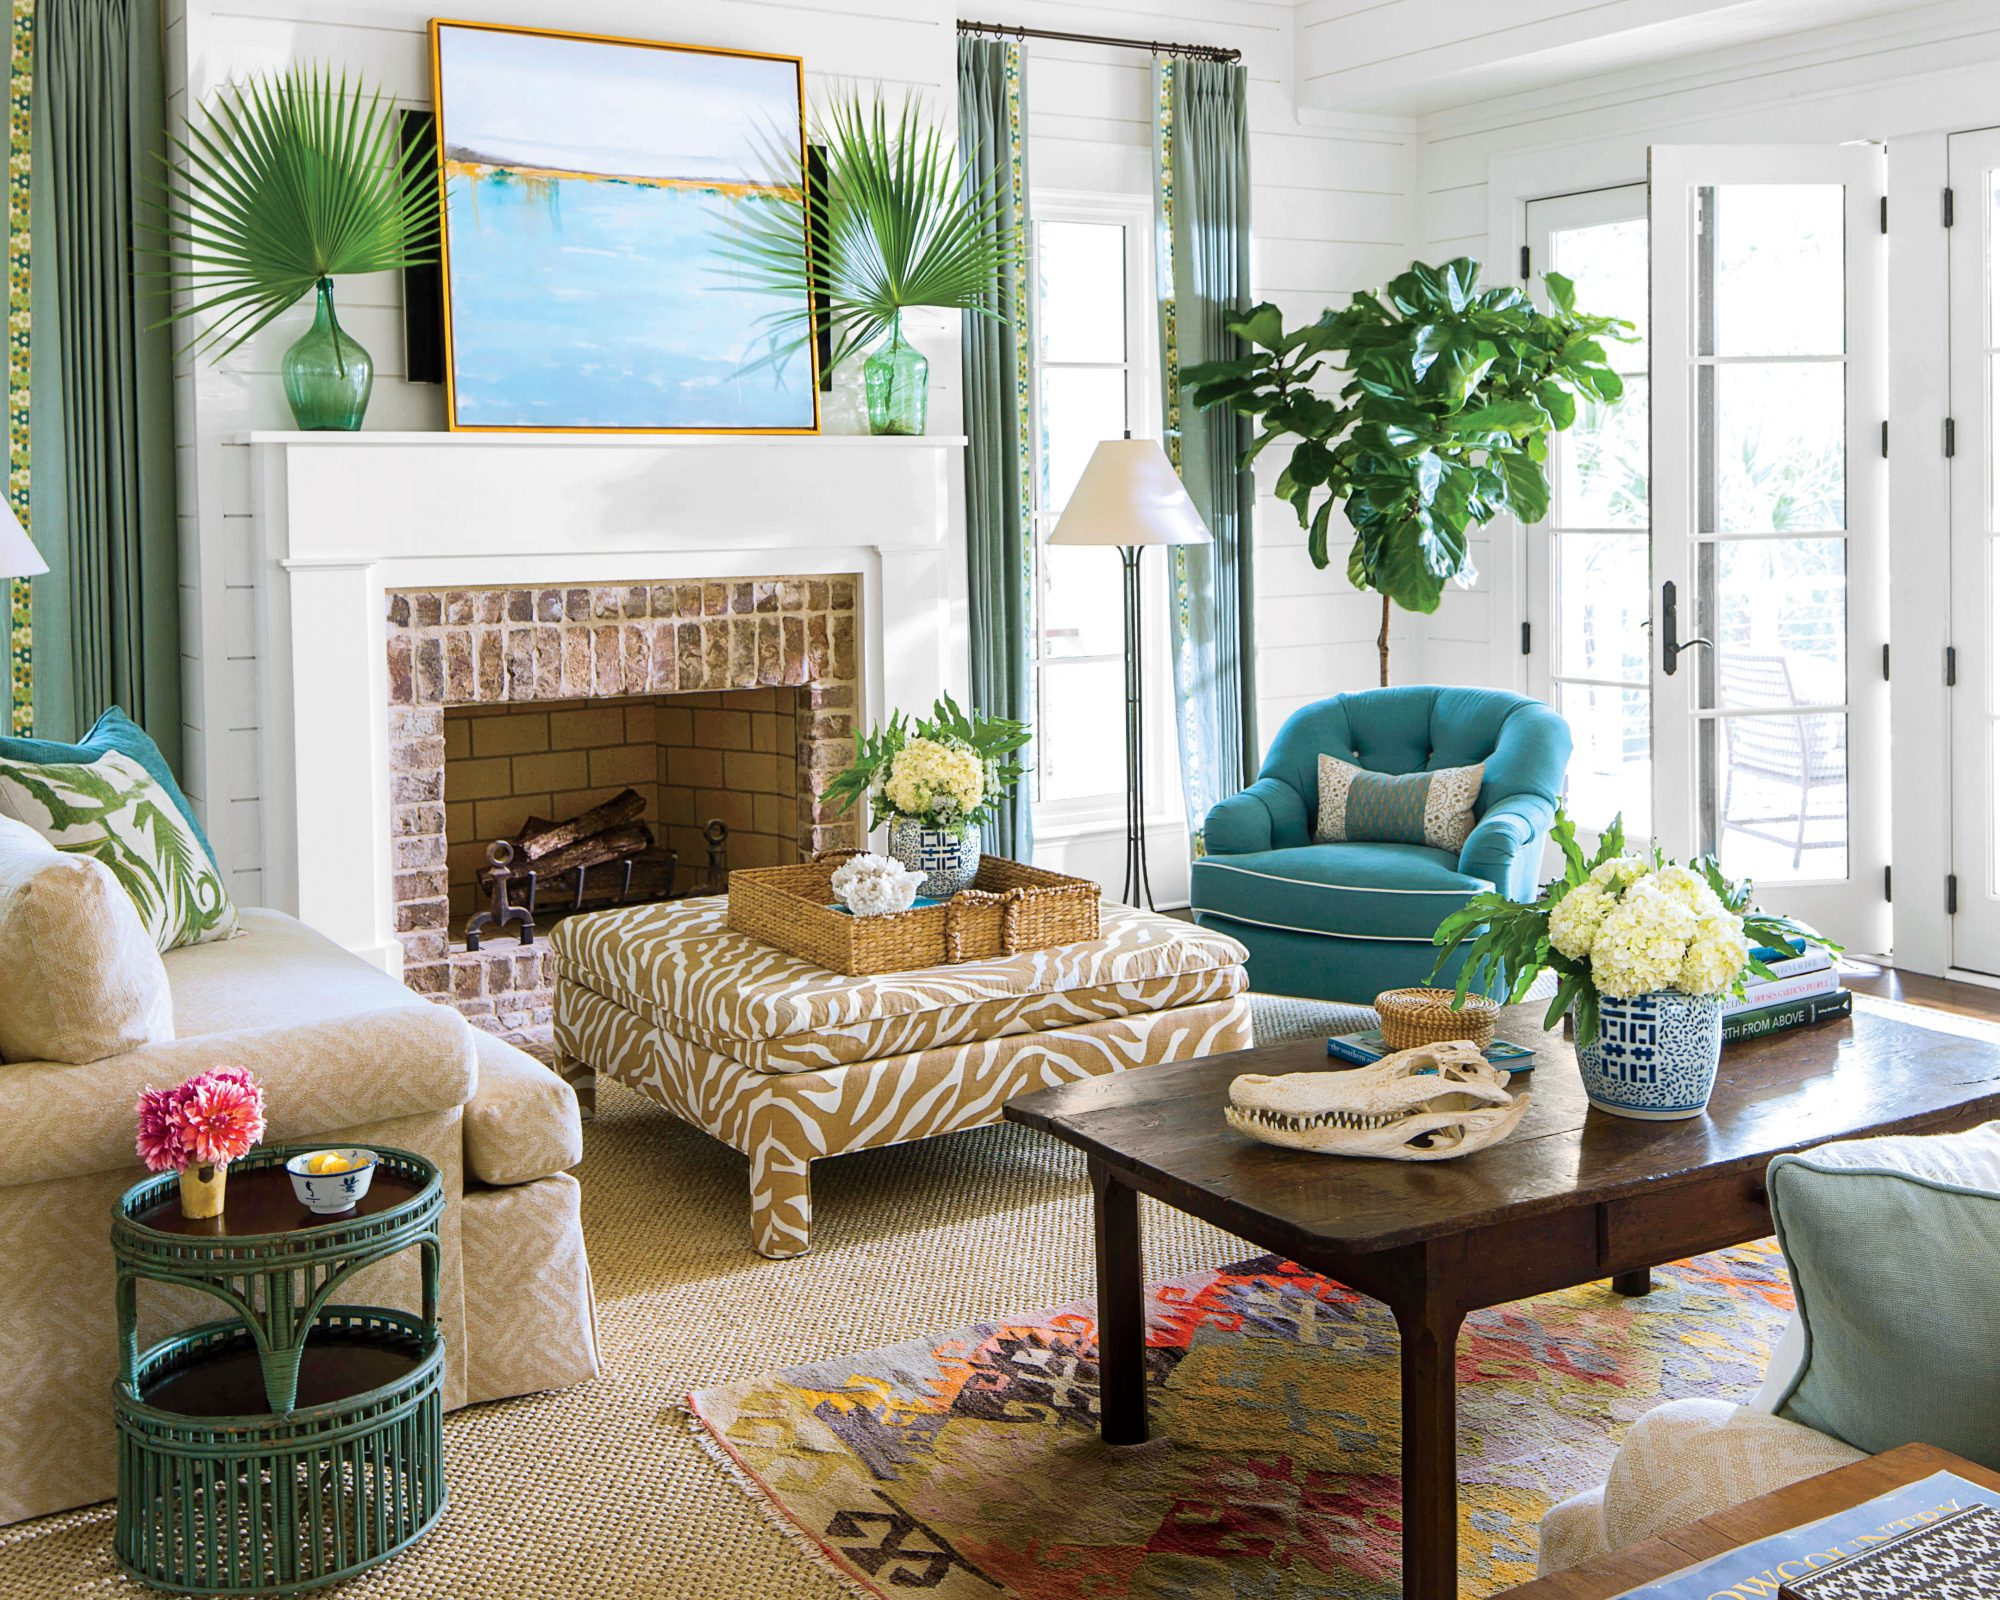 Home Decor Ideas Photos Living Room 106 living room decorating ideas - southern living